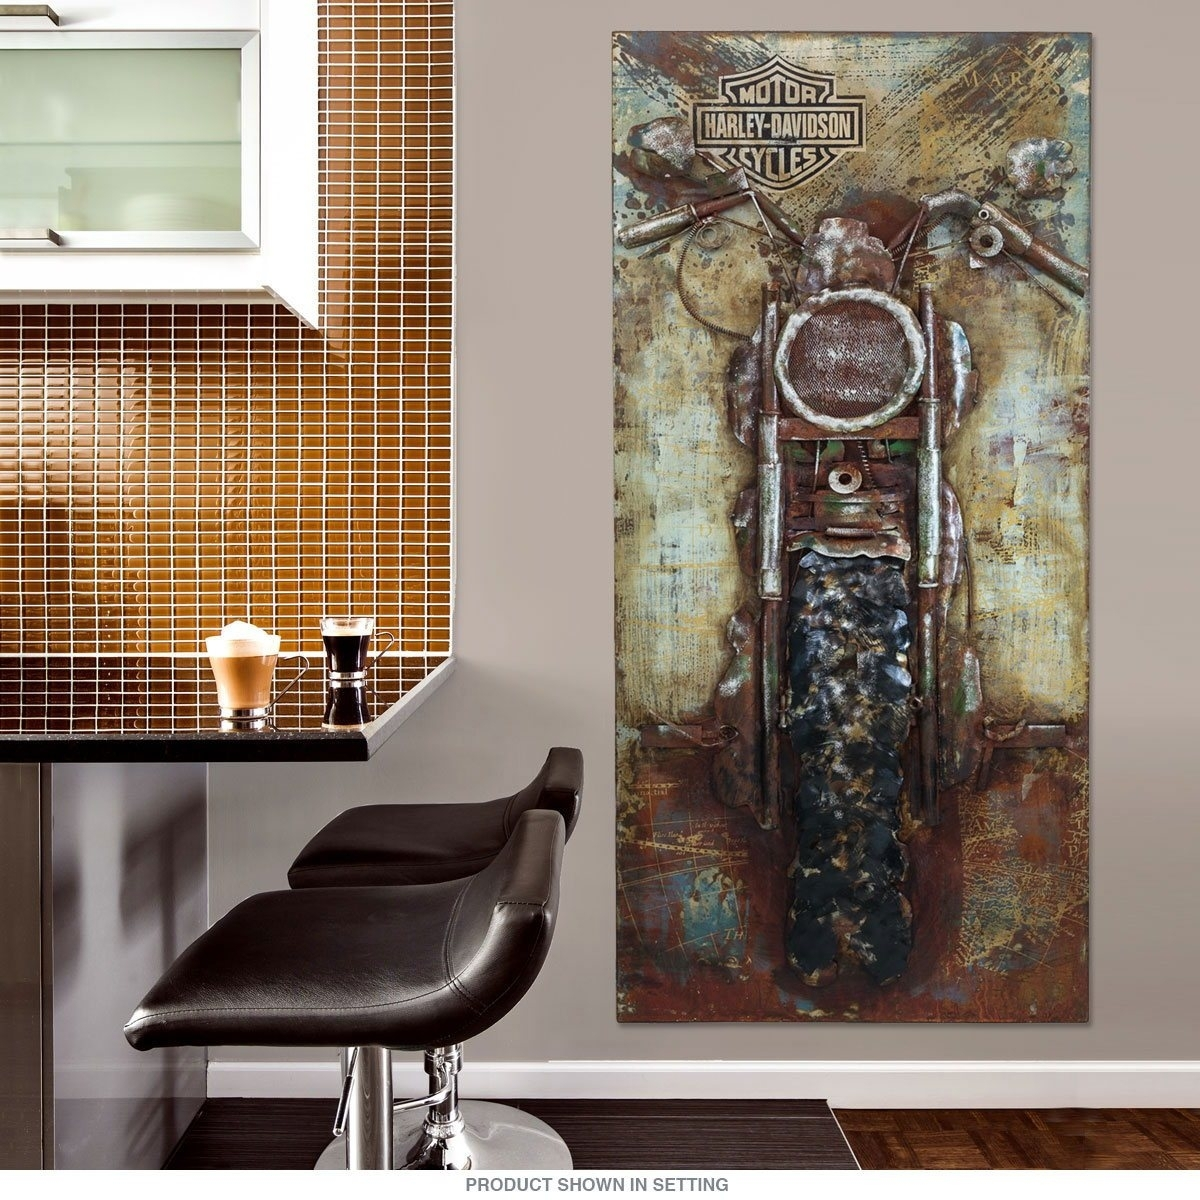 Living Room Outstanding Harley Davidson Image Ideas Bike Repurposed throughout Most Popular Harley Davidson Wall Art